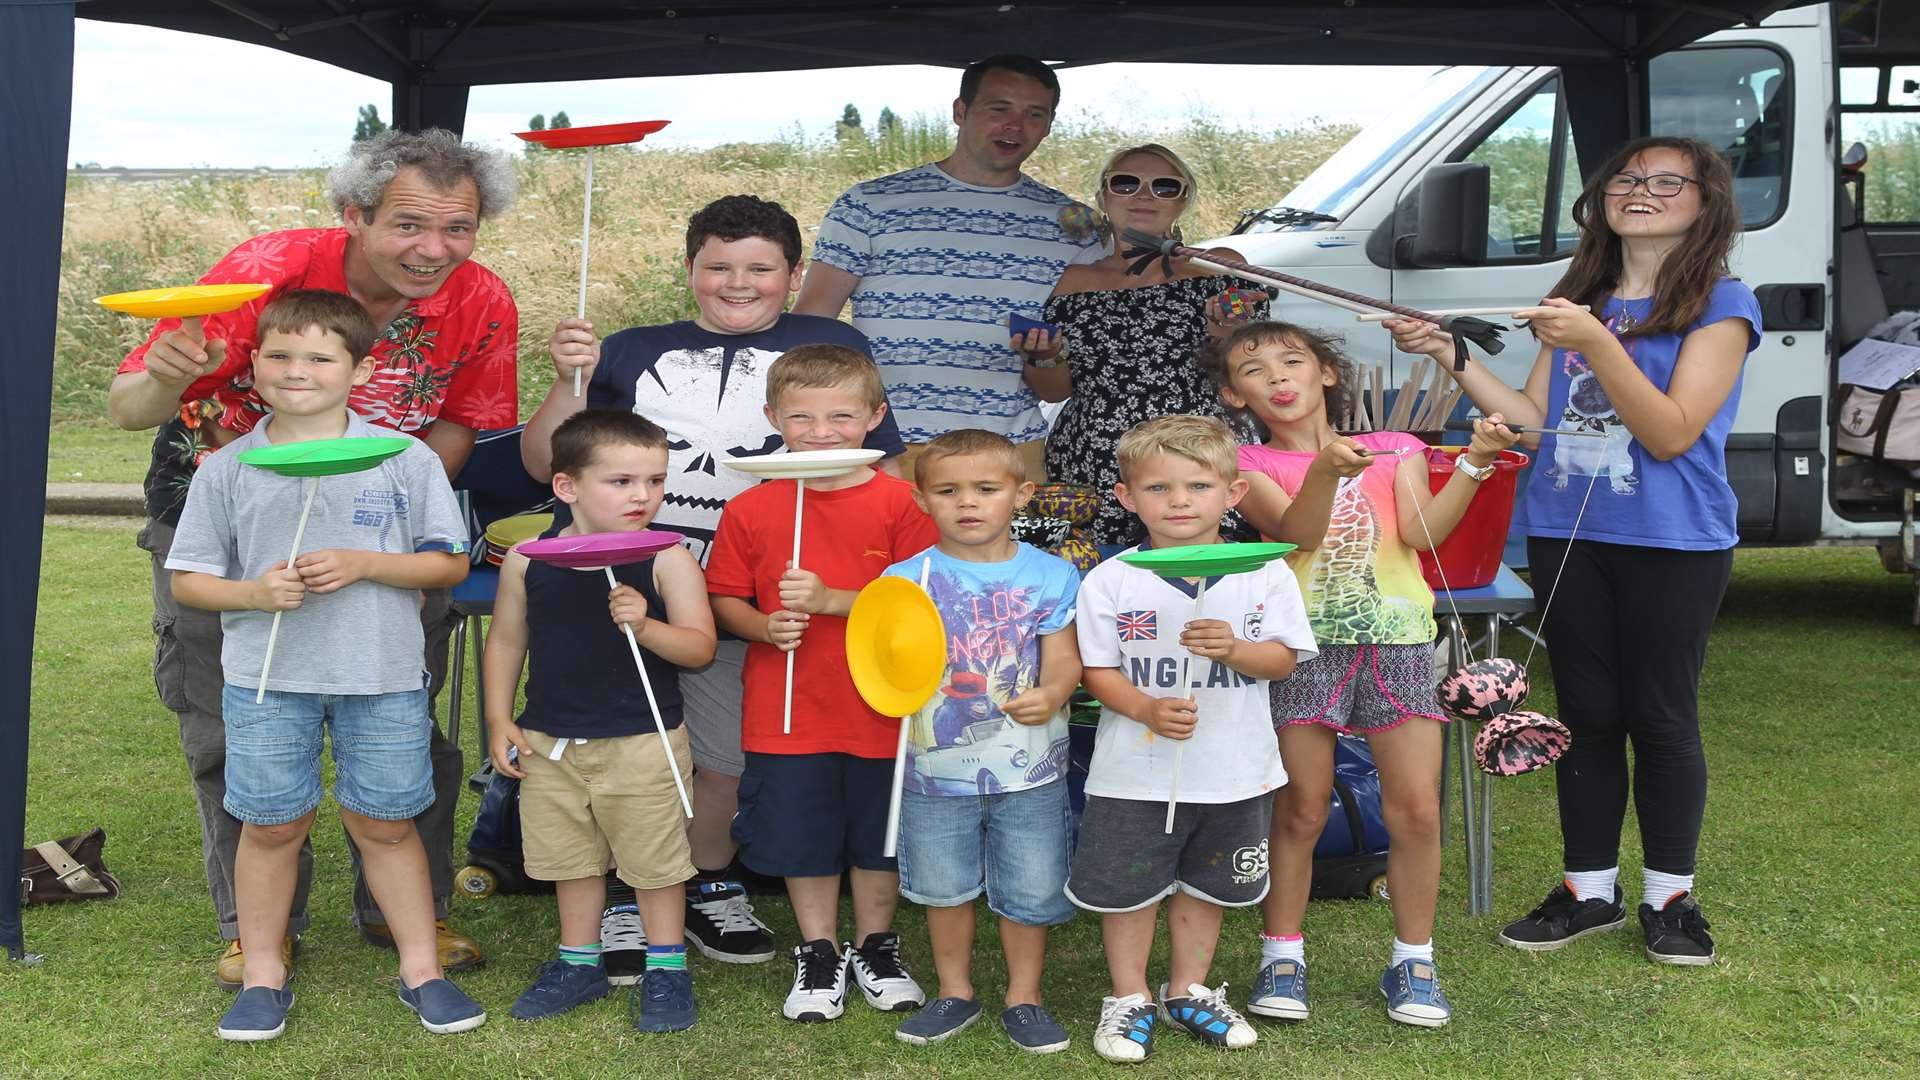 Tom from TK Arts left in red shirt with children with circus props at Milton Creek Country Park, in 2016